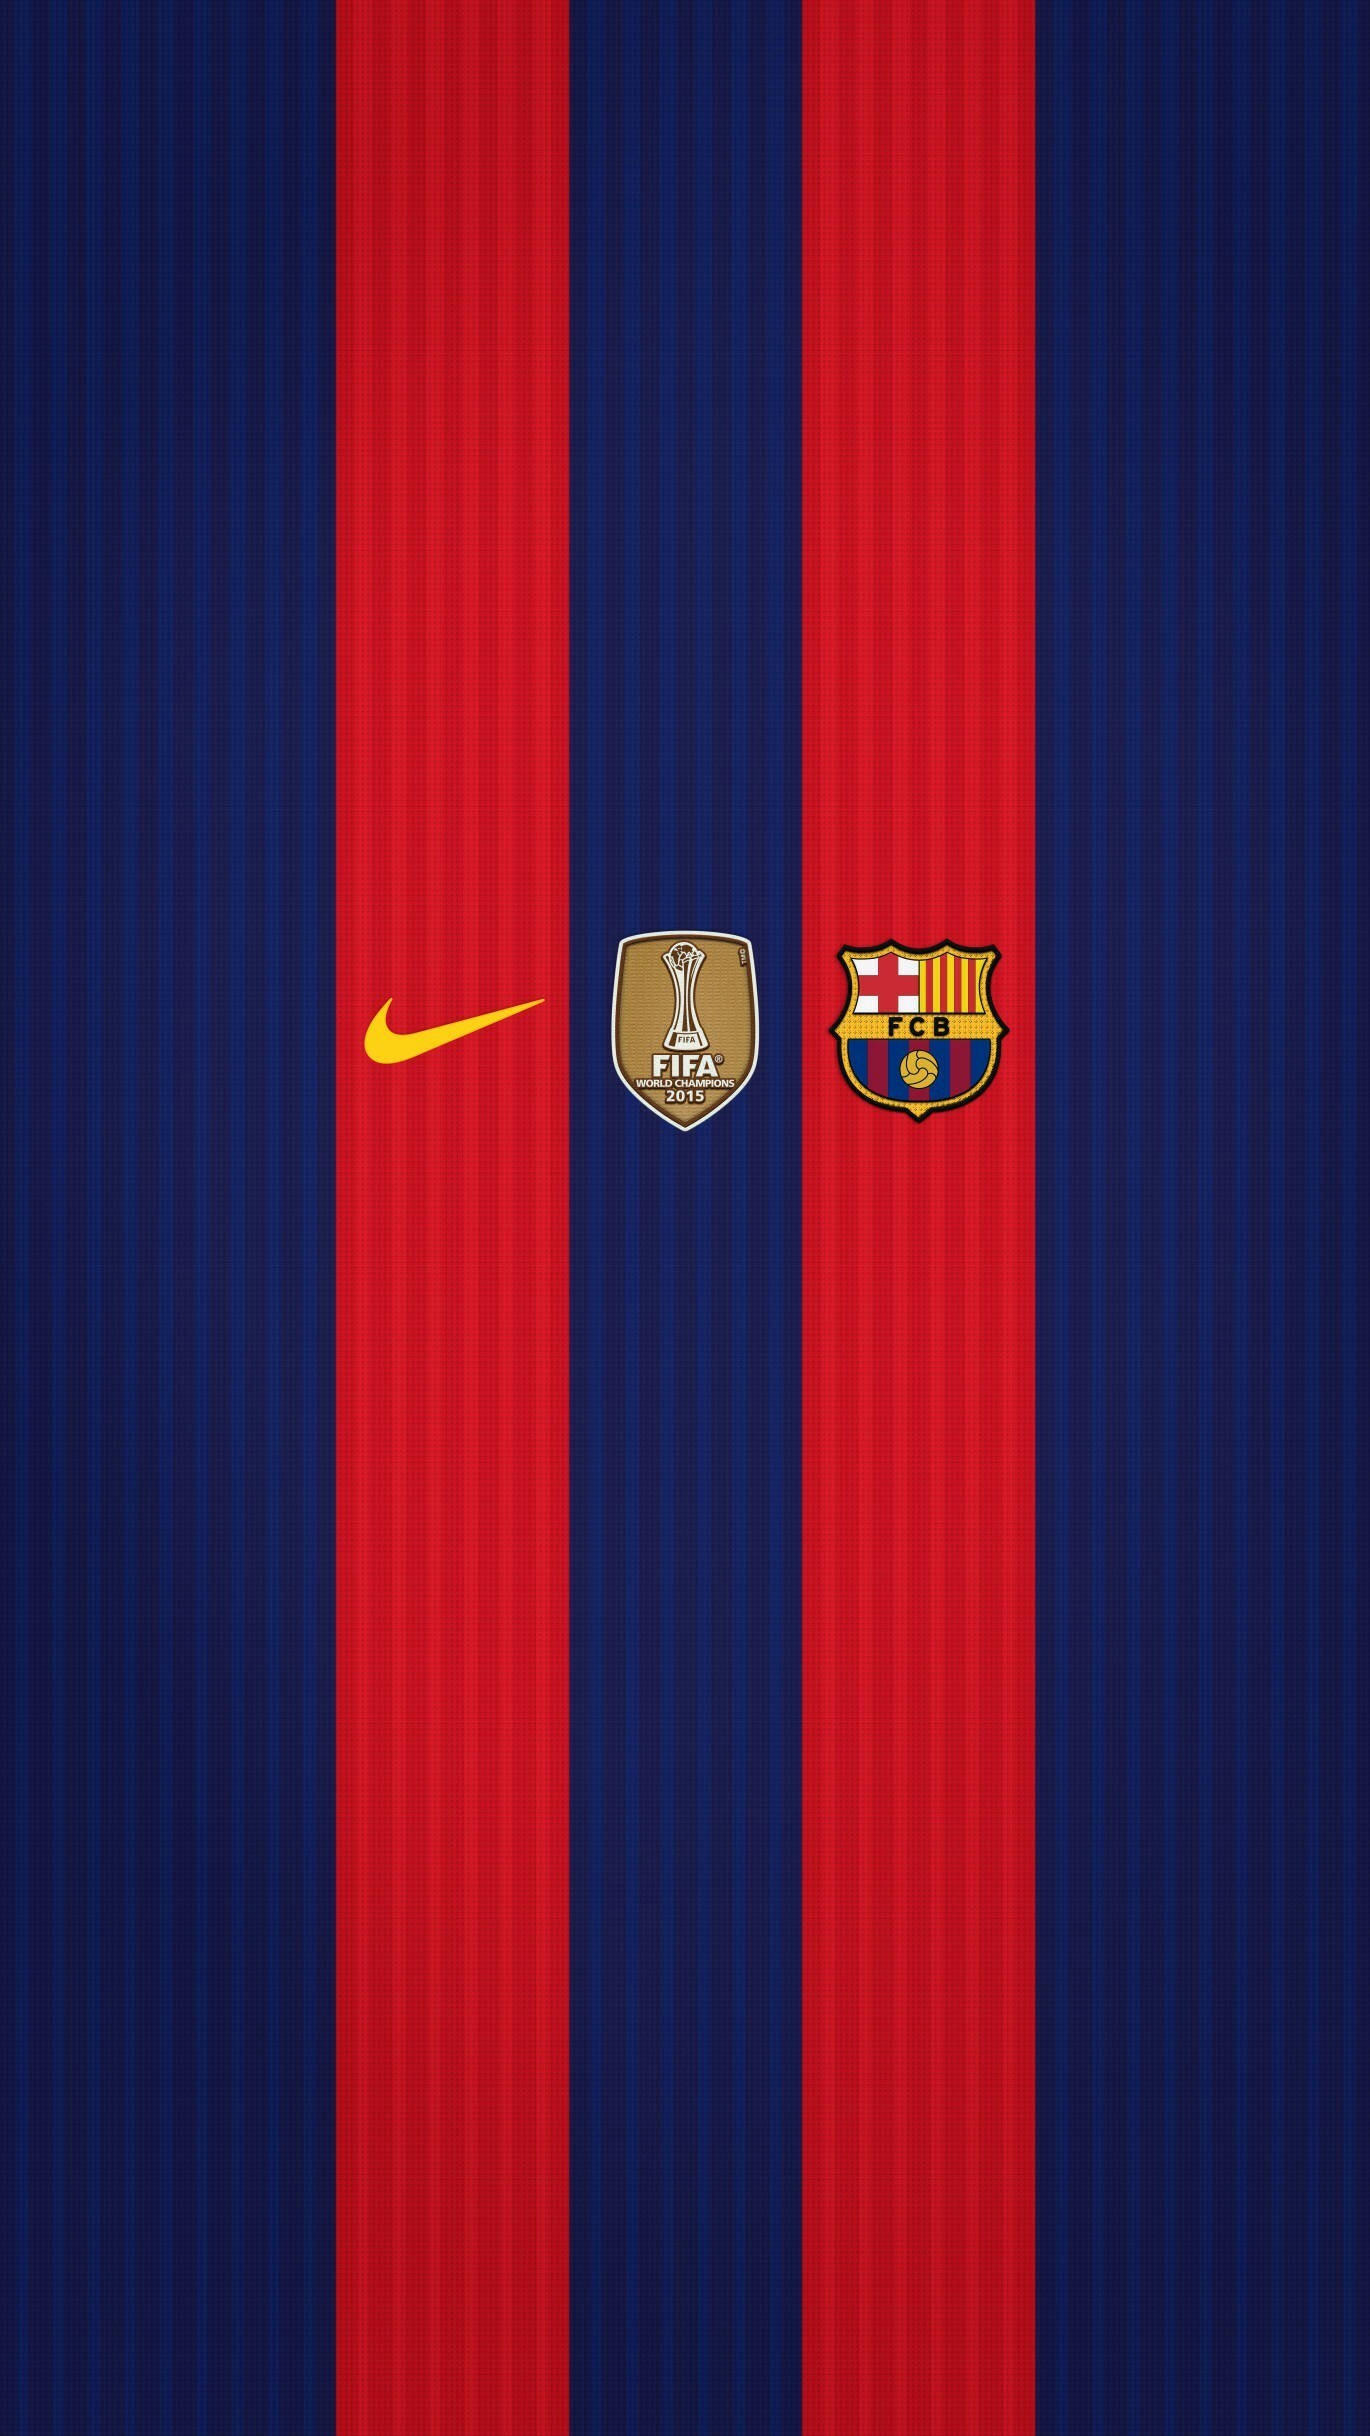 The Best Fc Barcelona Wallpaper 2020